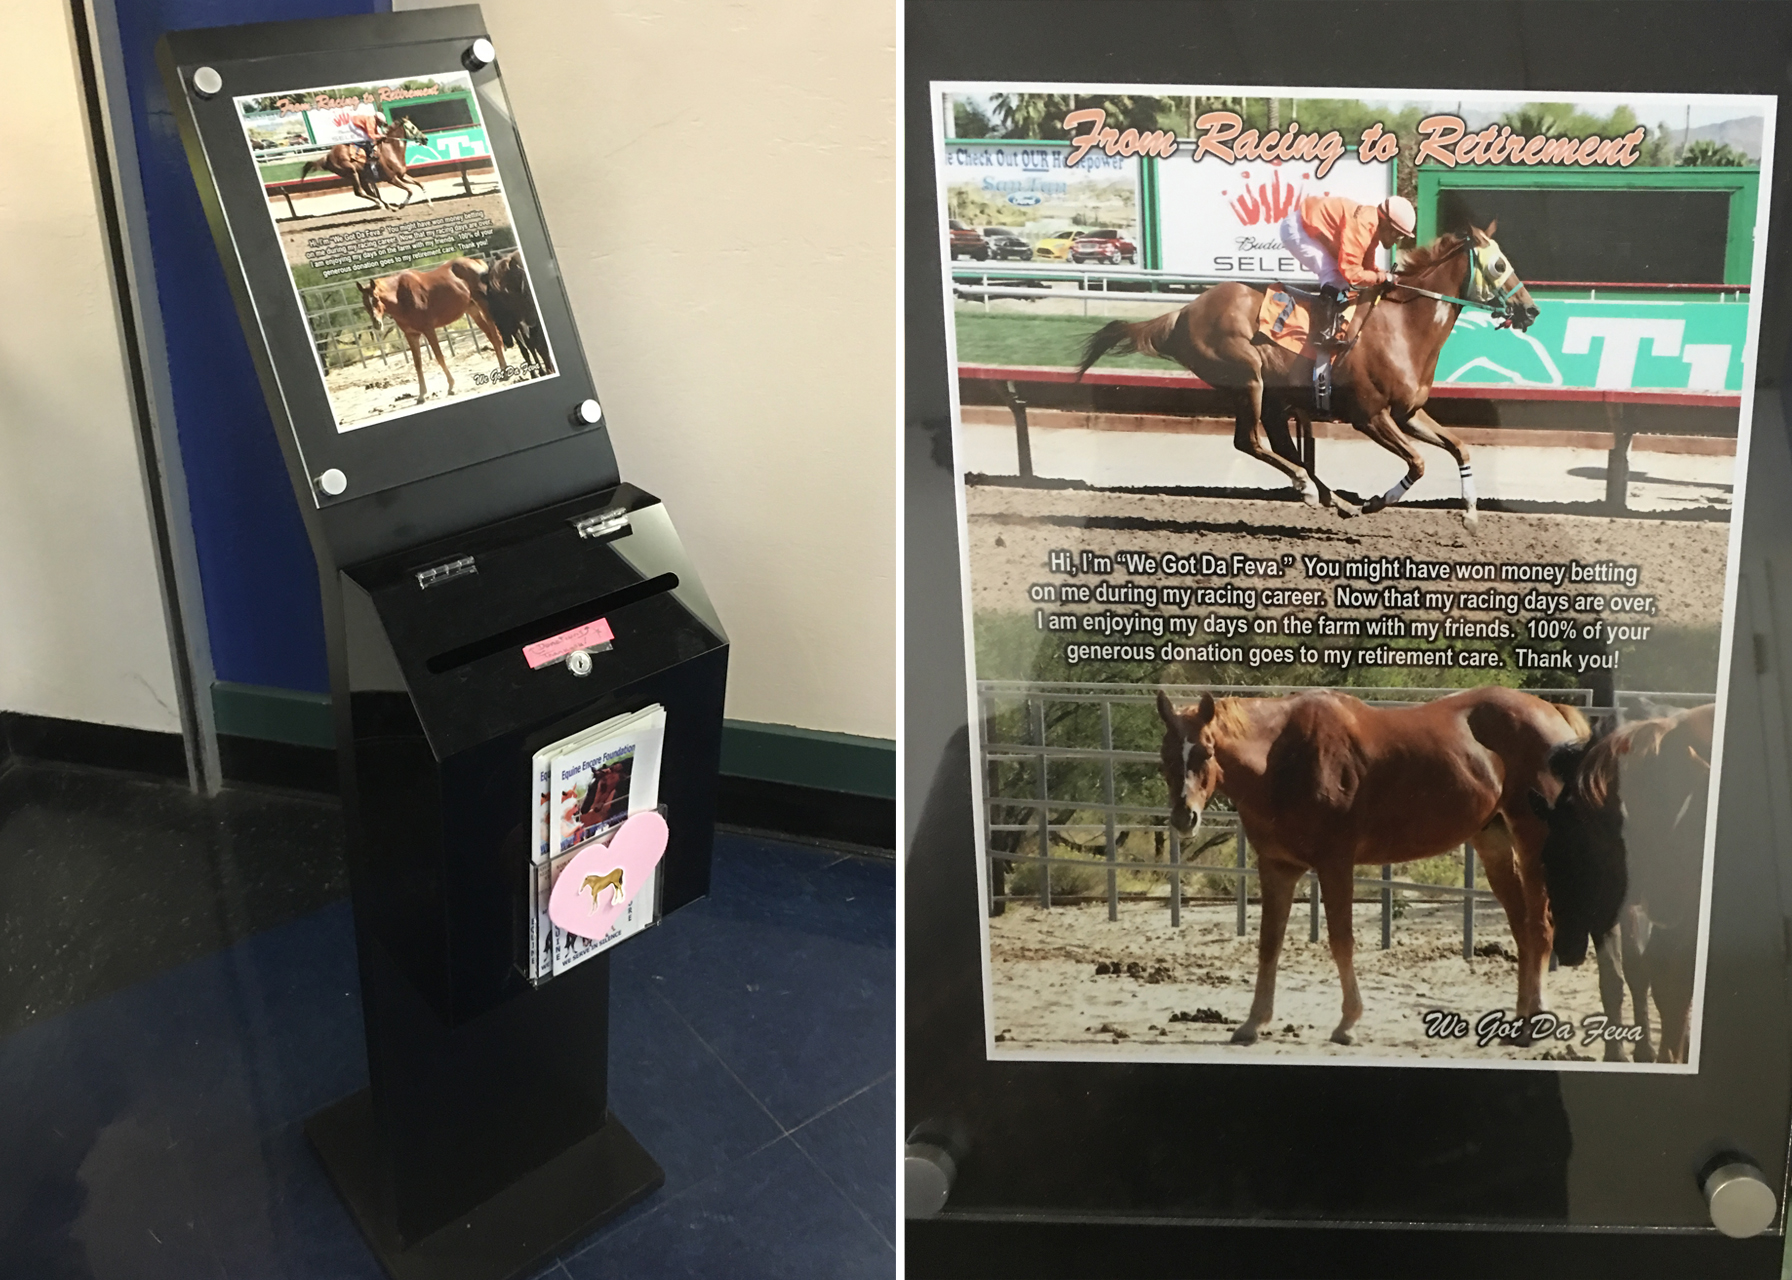 One of six lockboxes for collecting aftercare donations at Turf Paradise